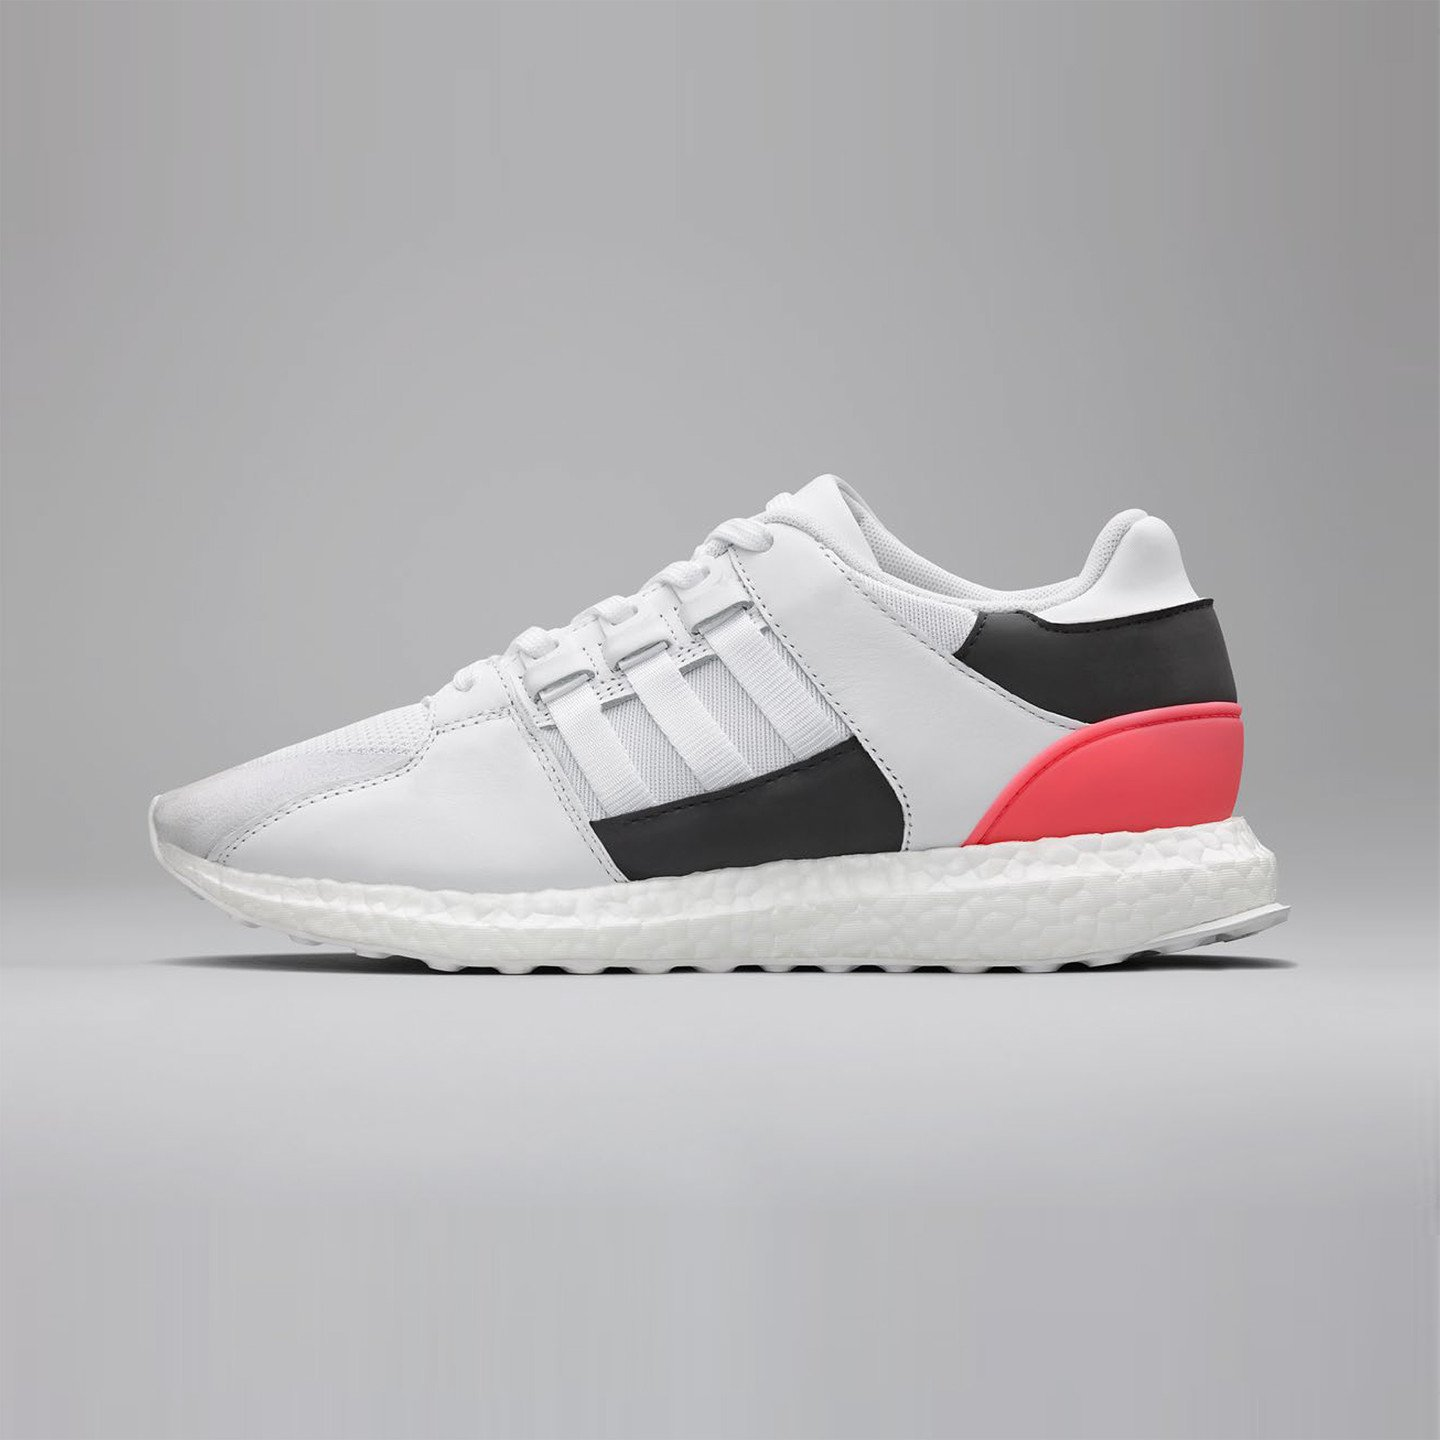 Adidas EQT Support Ultra Ftwr White / Turbo Red BA7474